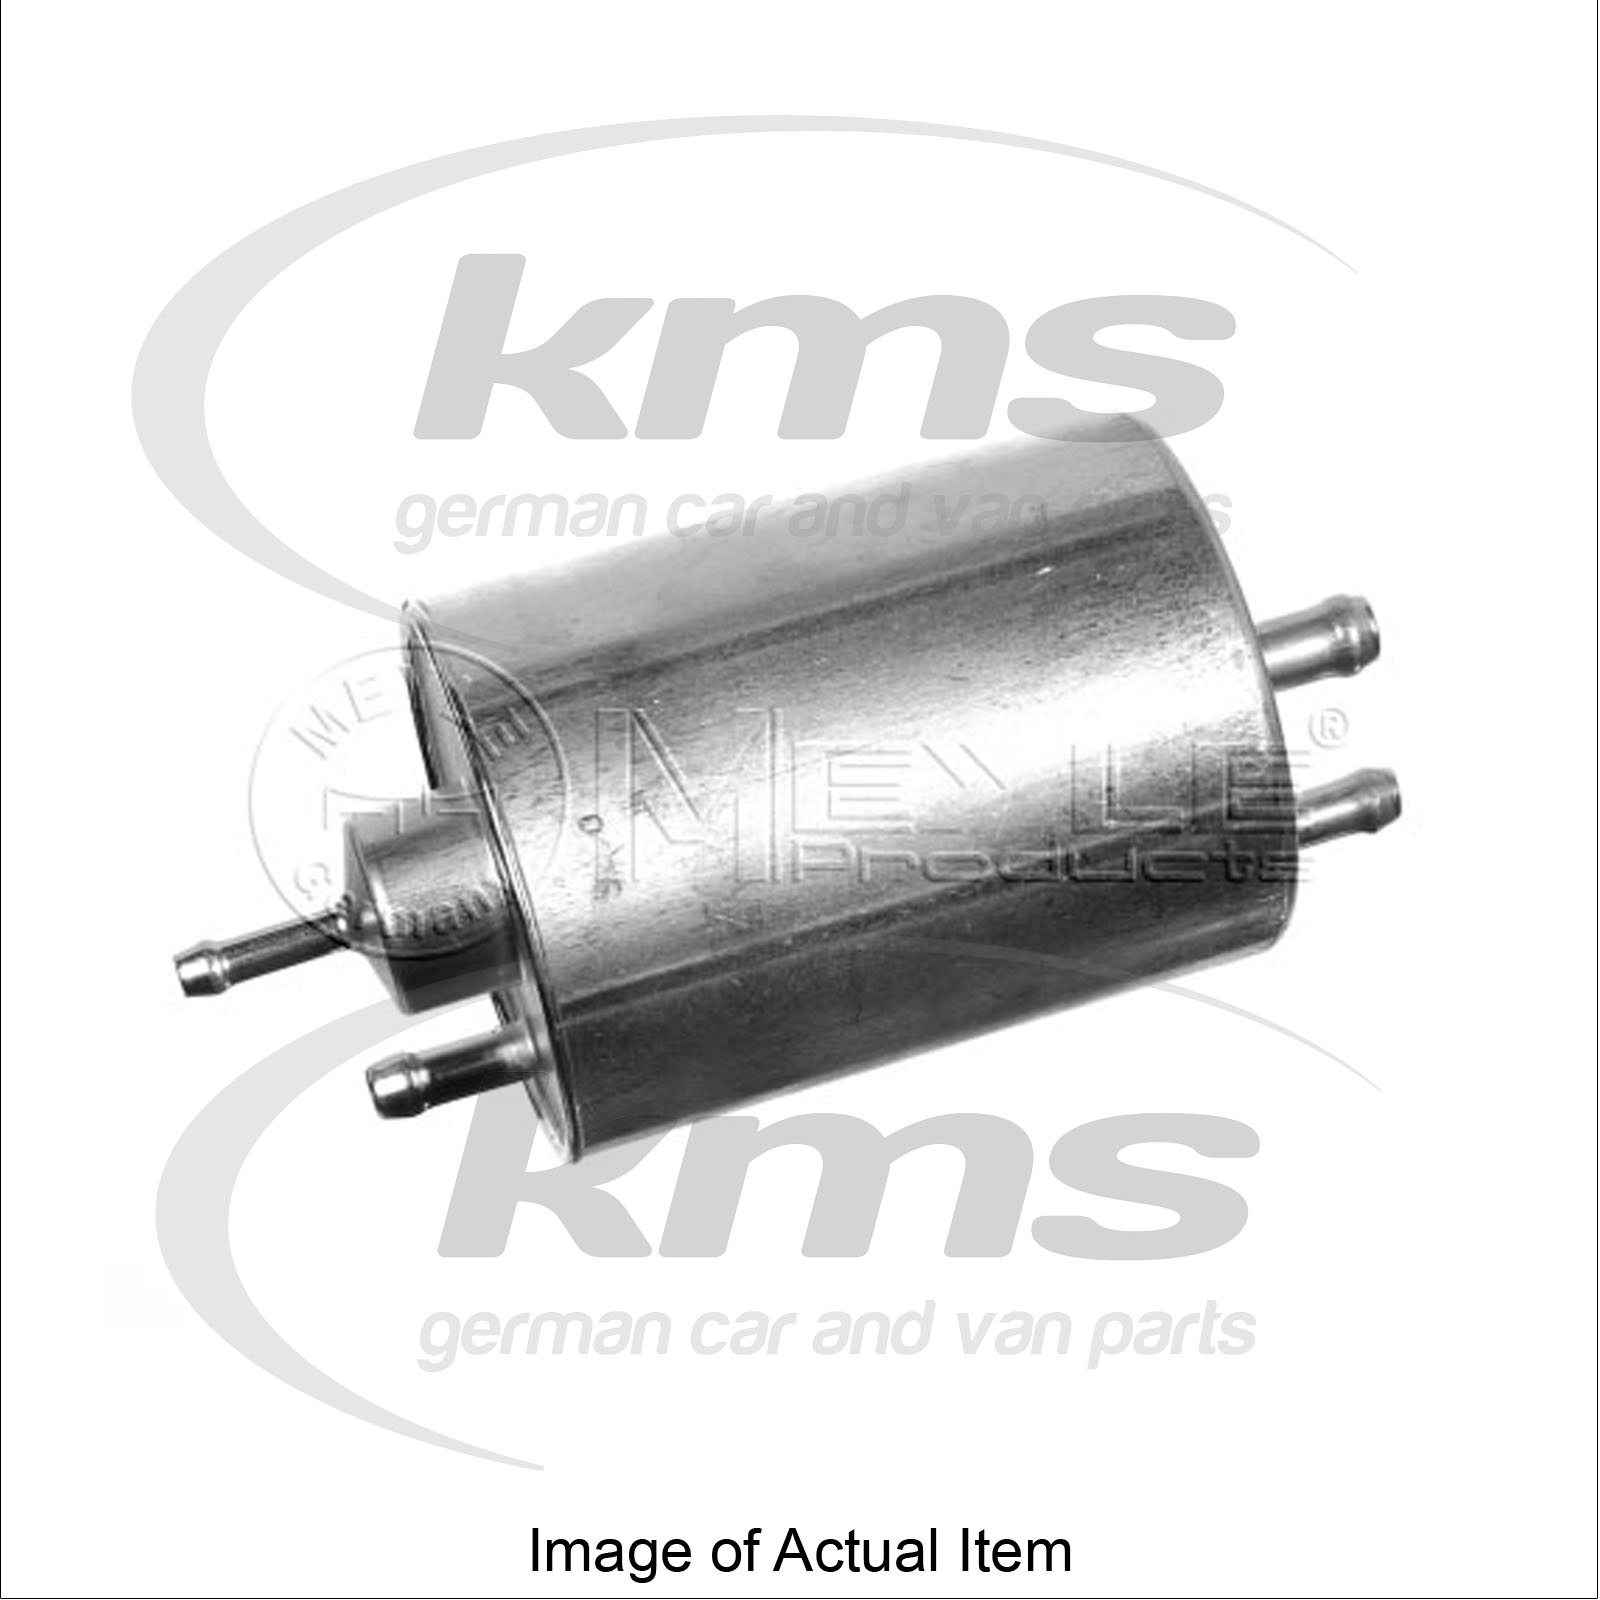 Fuel filter mercedes c class w203 c 230 kompressor 203 for Mercedes benz fuel filter